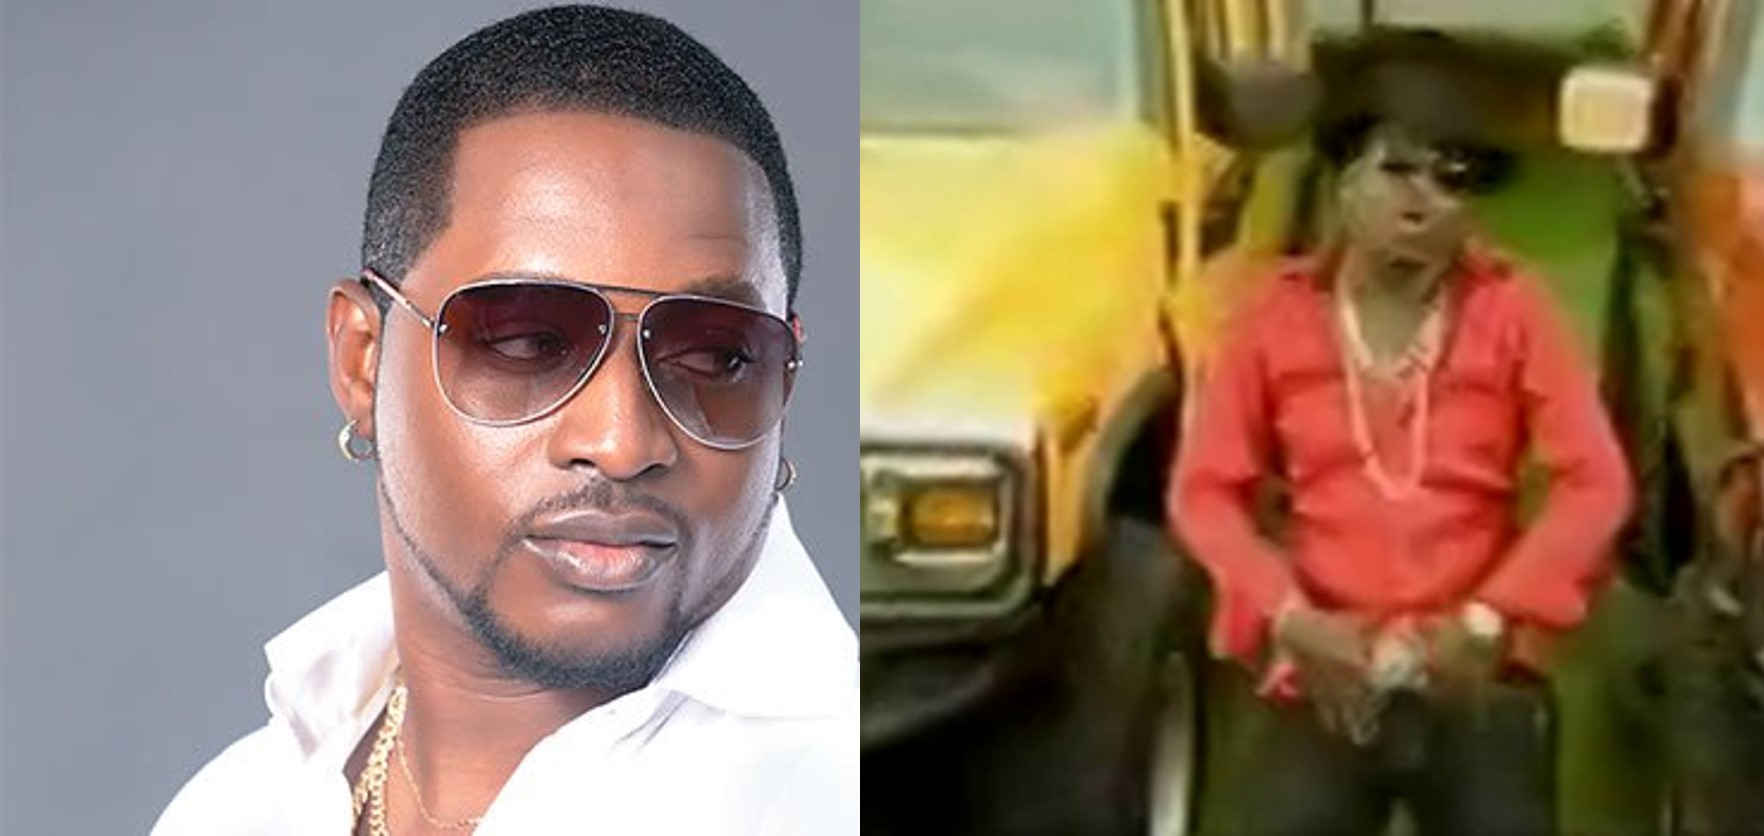 Olu Maintain Reveals The True Meaning Behind His Yahooze Song After 11 Years